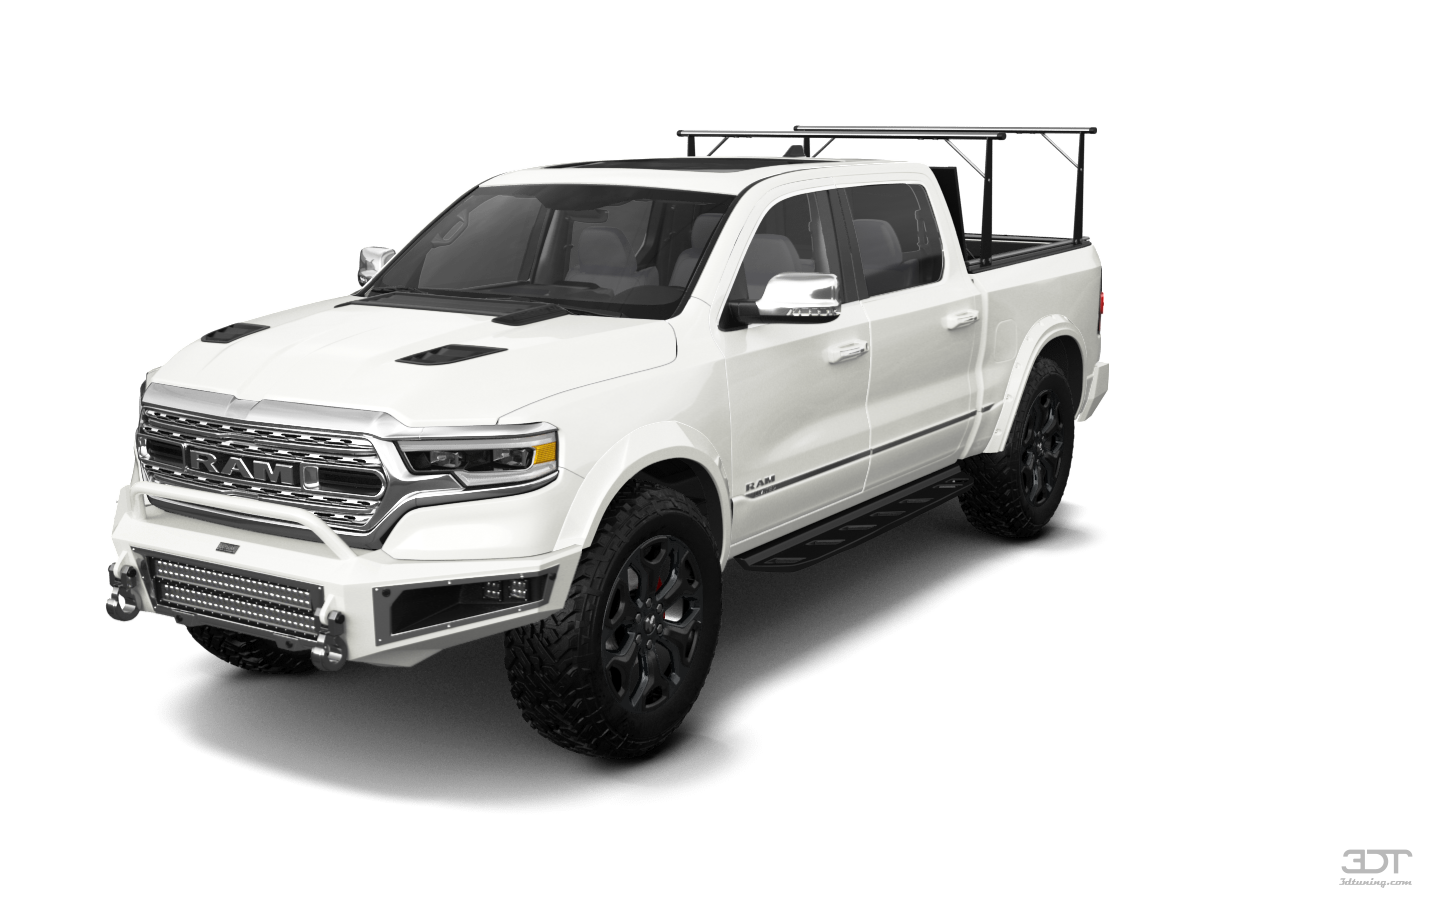 Dodge Ram 1500 4 Door Truck 2019 tuning